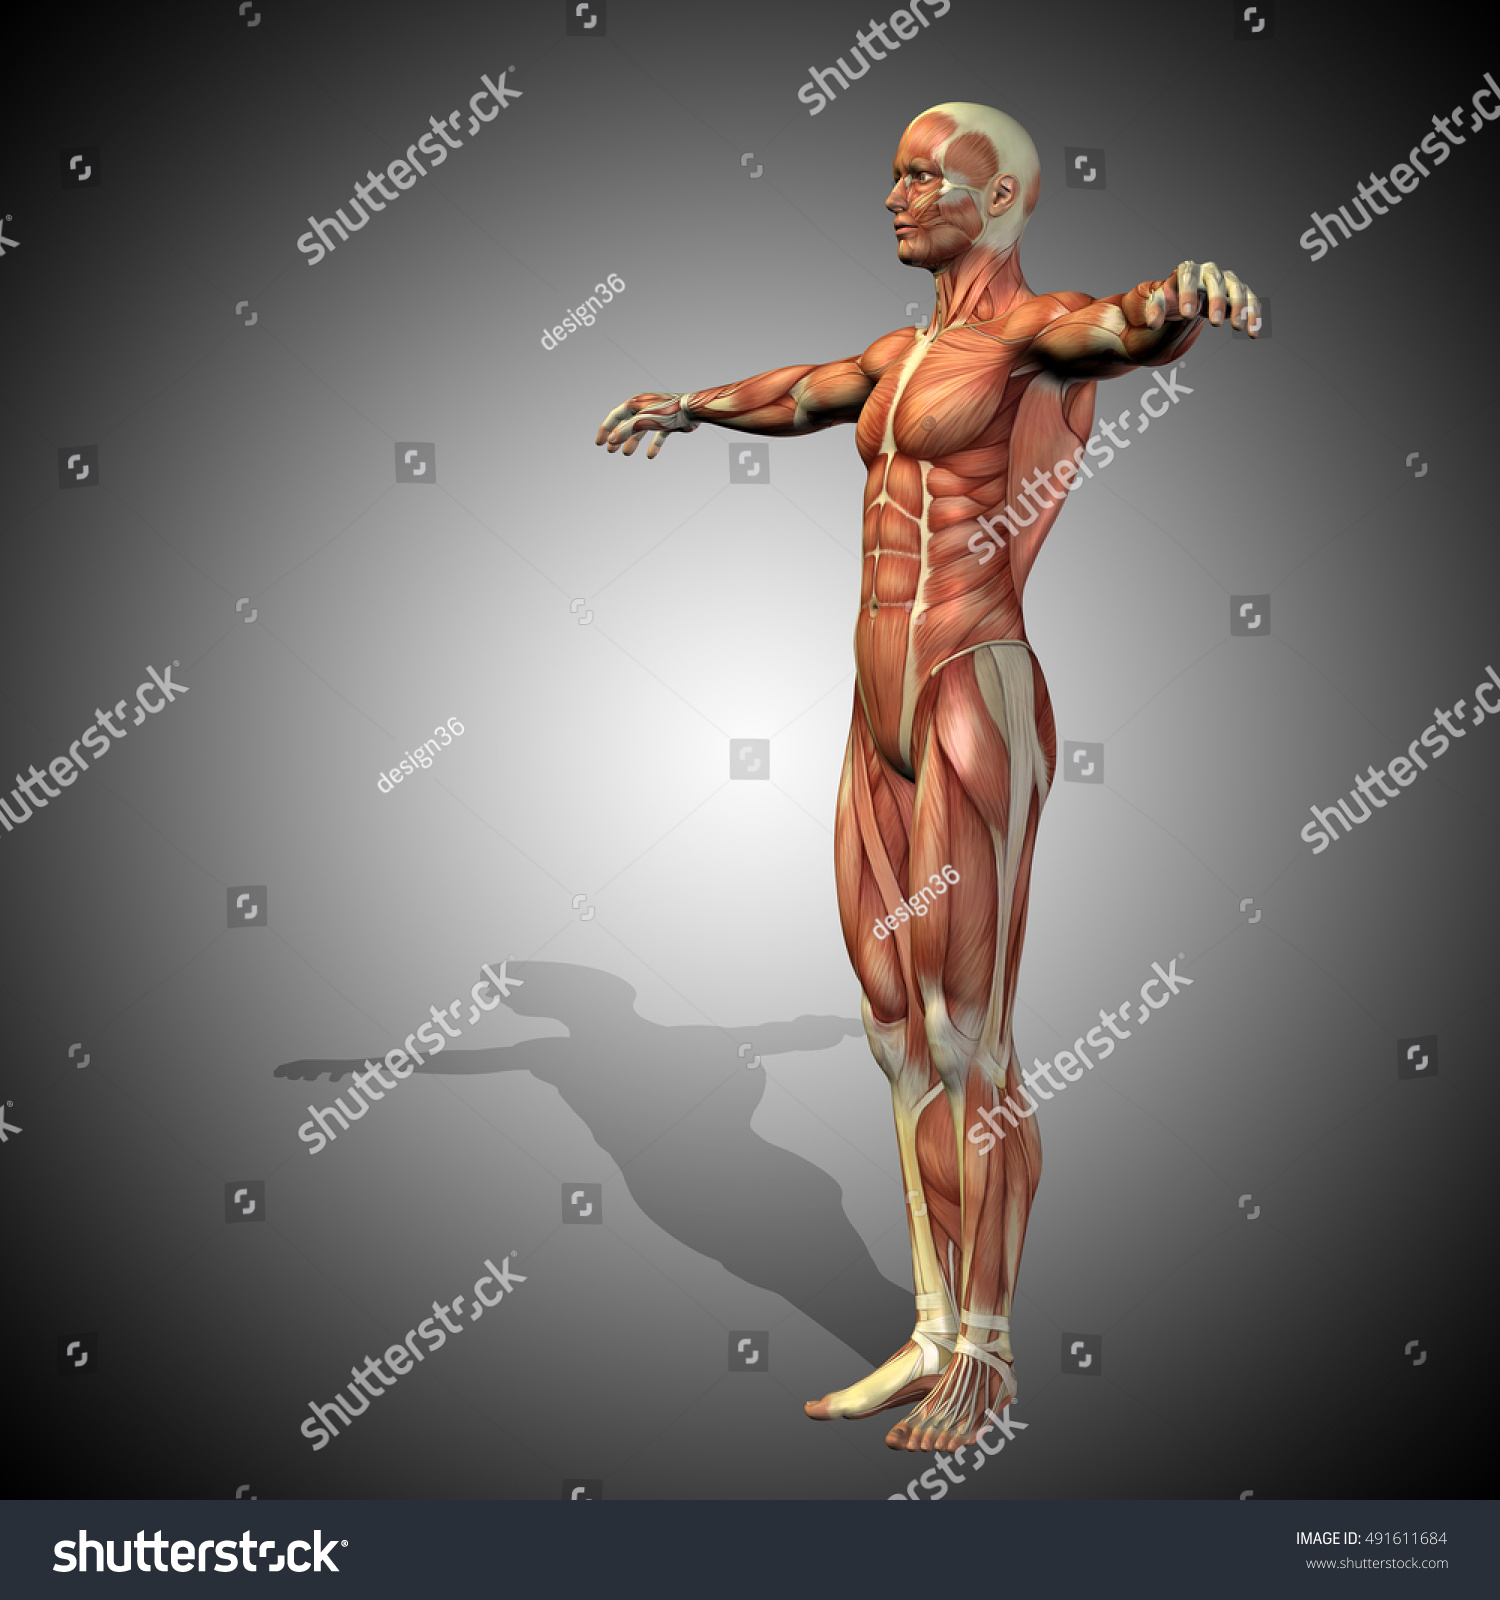 Concept Strong Human Man 3 D Illustration Stock Illustration